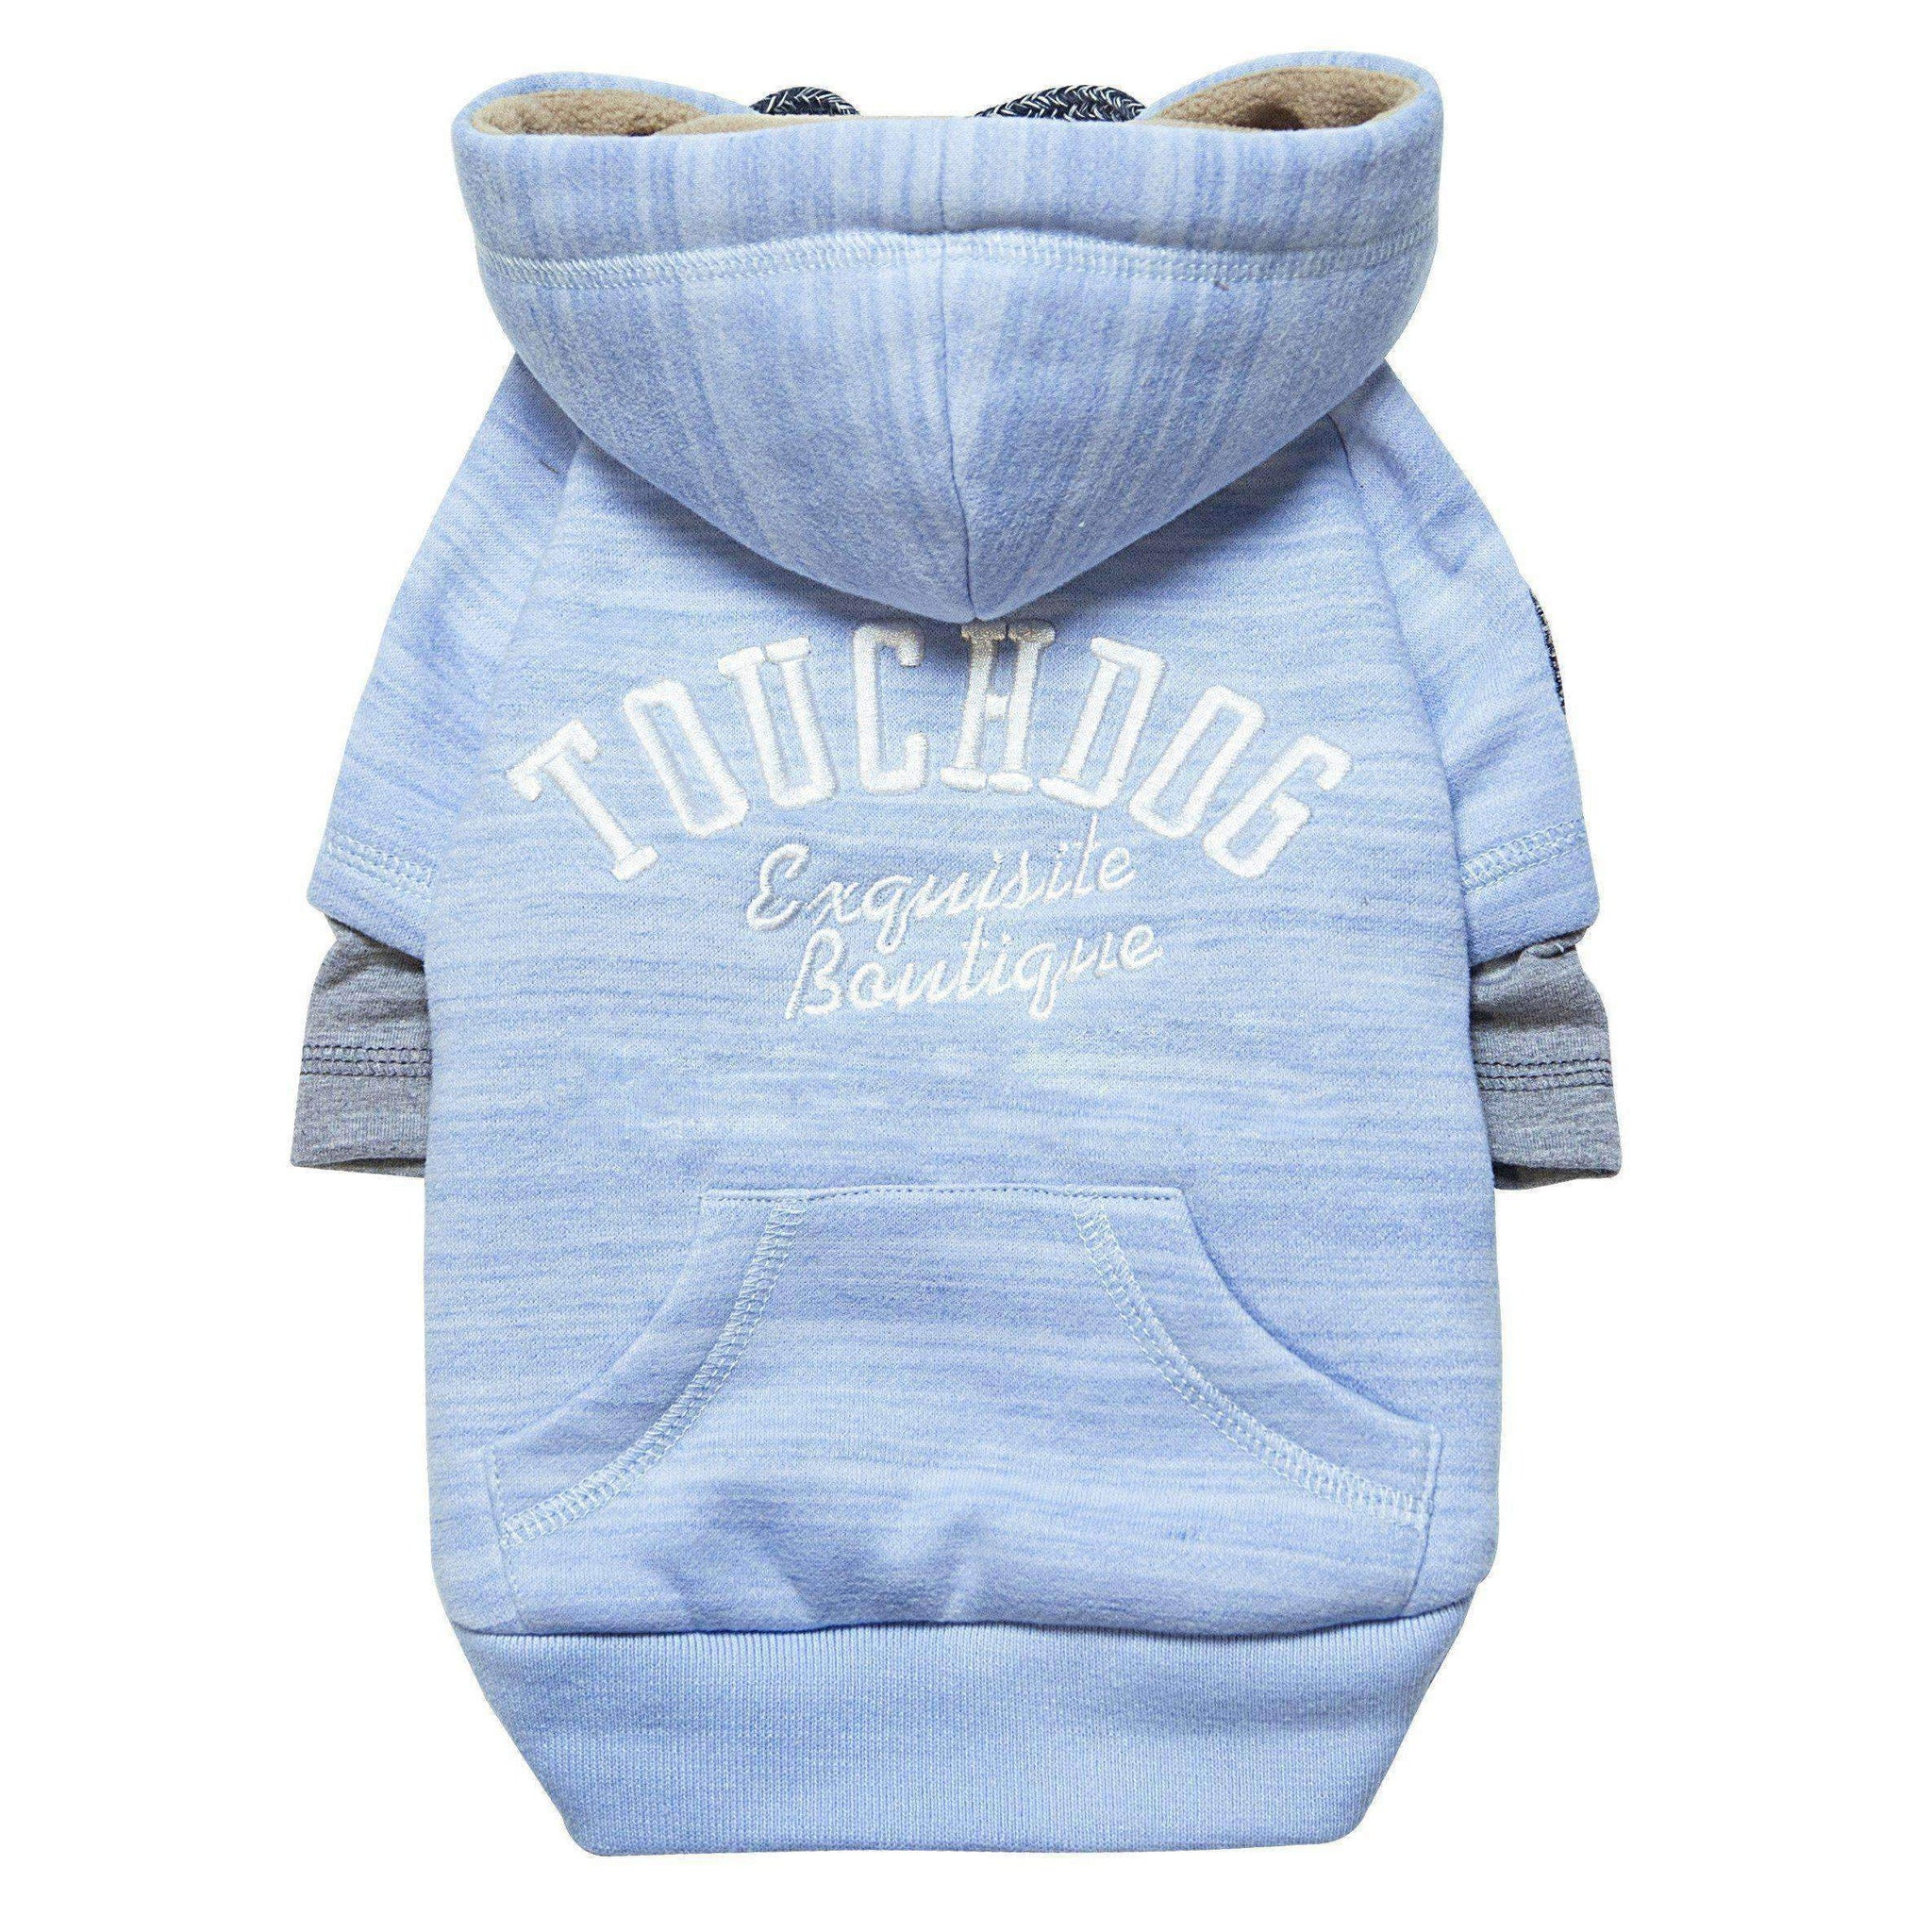 Touchdog Hampton Beach Designer Ultra Soft Sand-Blasted Cotton Pet Dog Hoodie Sweater - Blue-Touchdog-DirtyFurClothing